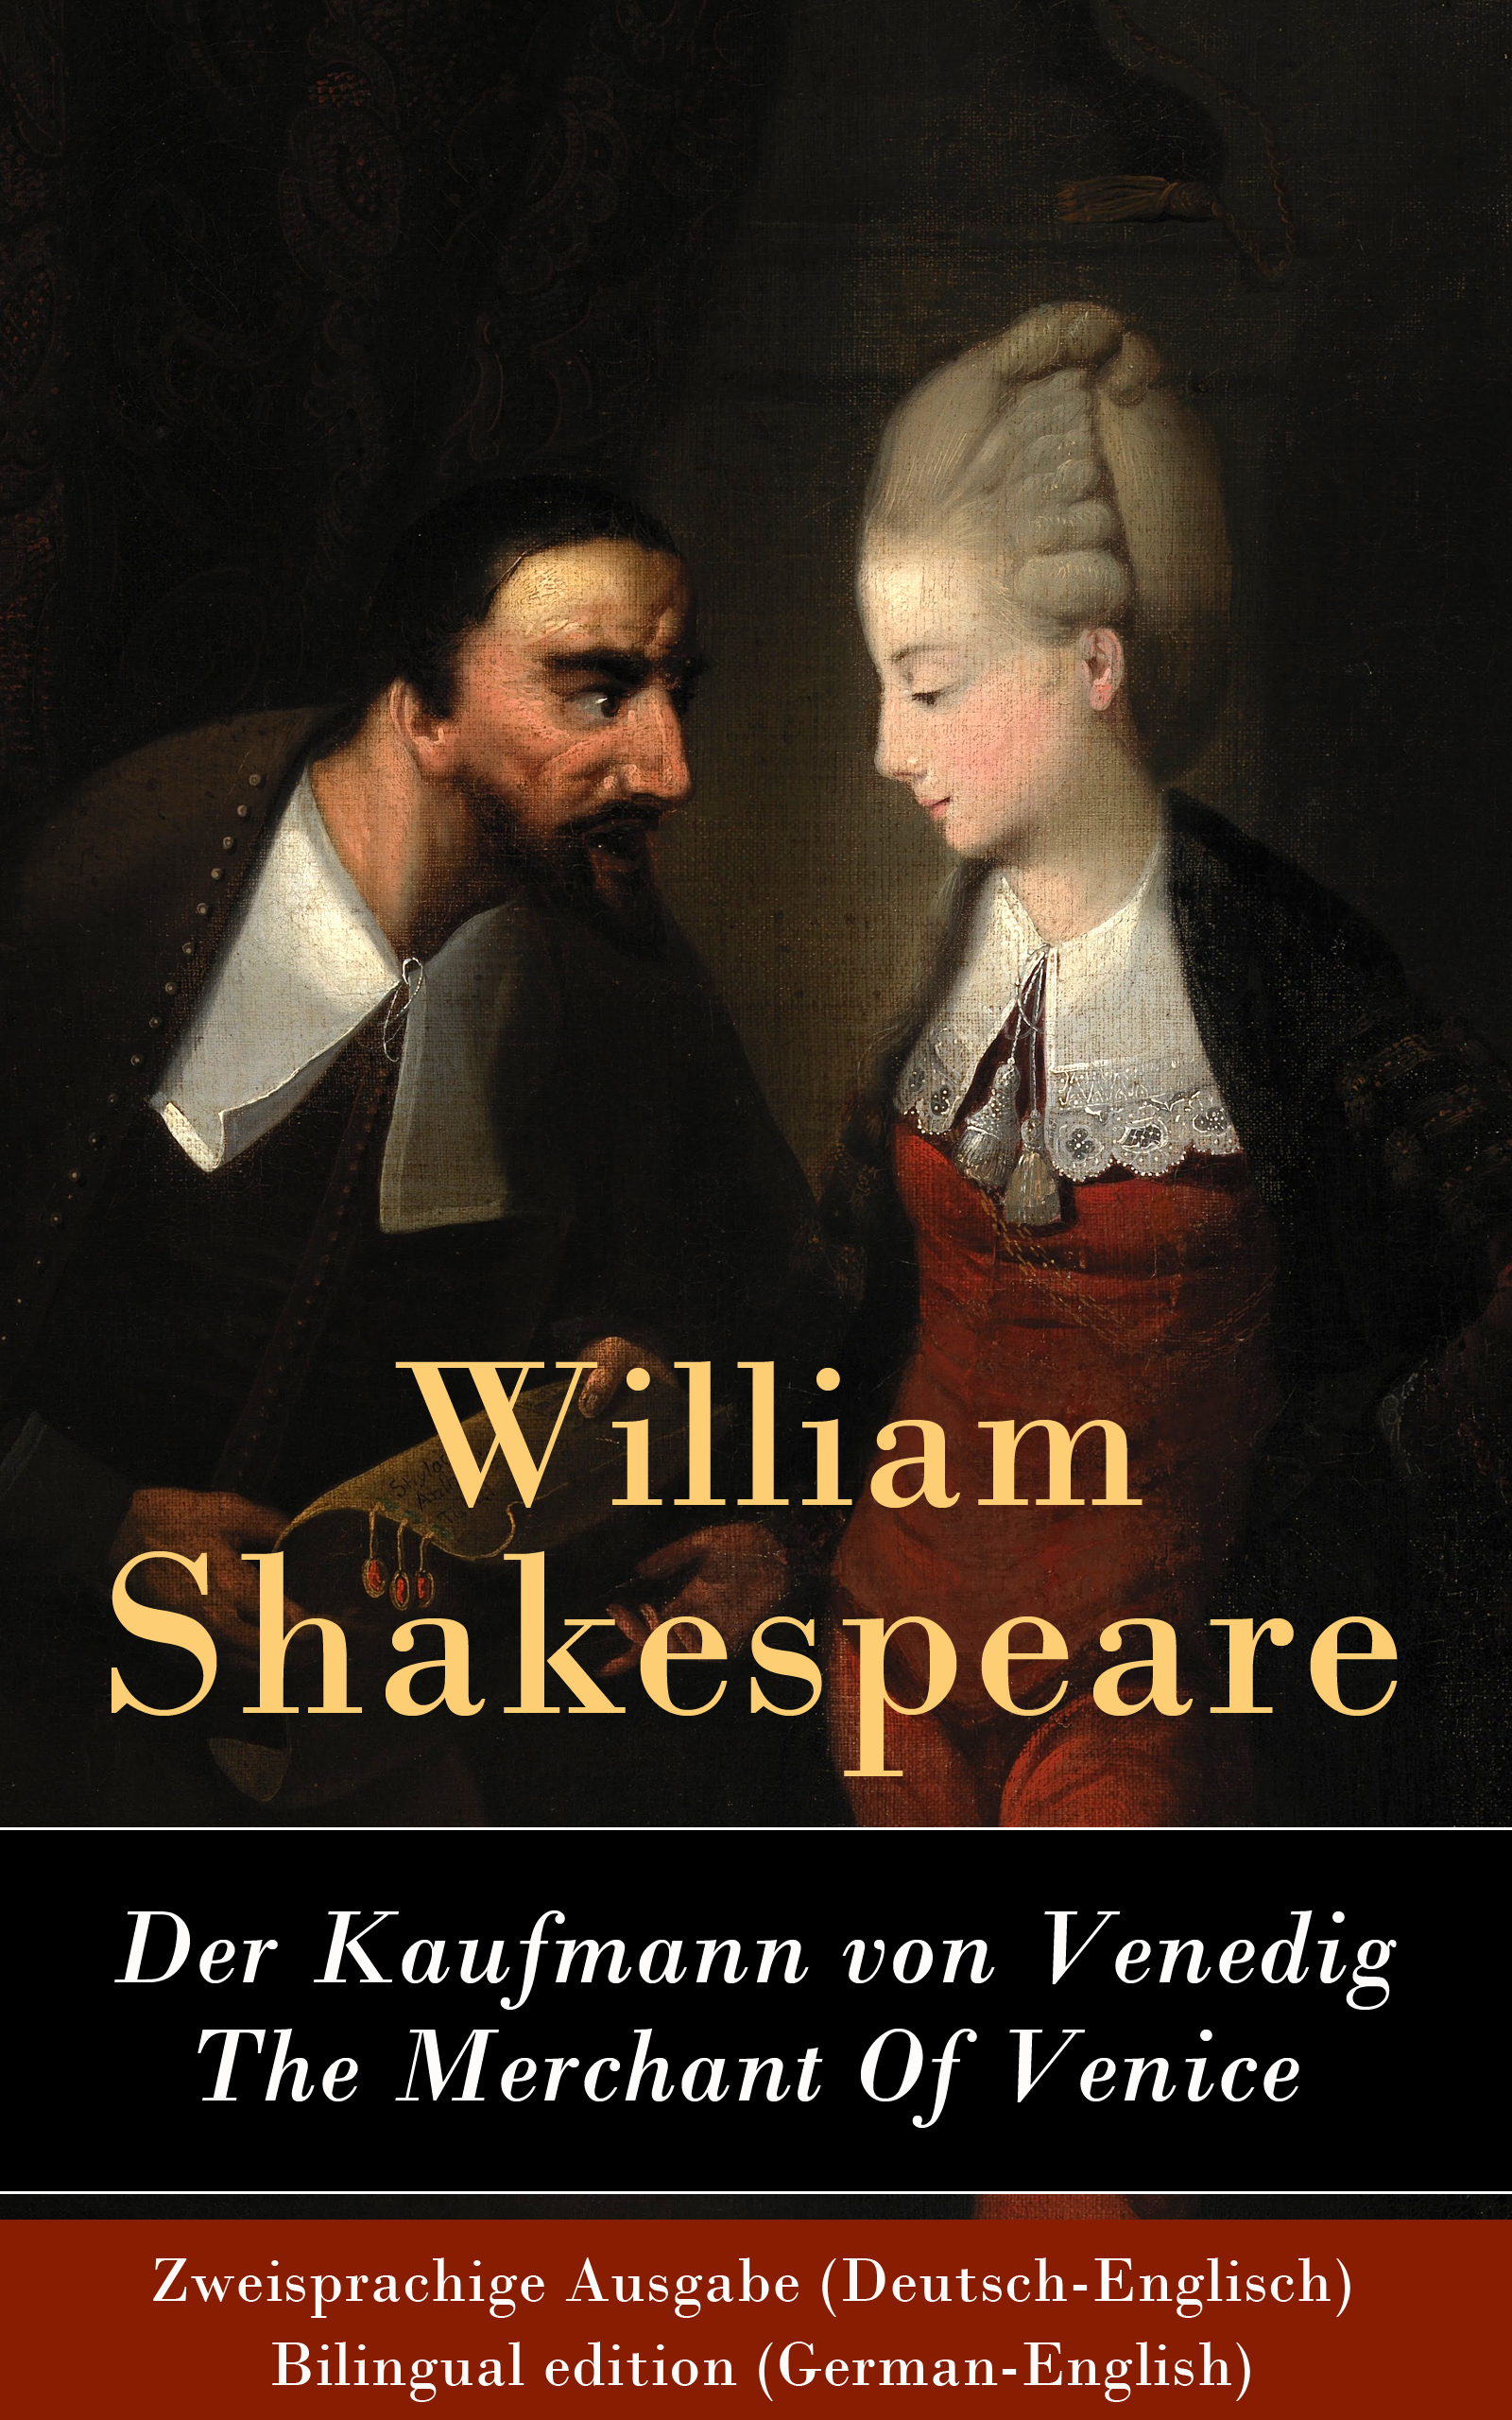 der kaufmann von venedig the merchant of venice zweisprachige ausgabe deutsch englisch bilingual edition german english